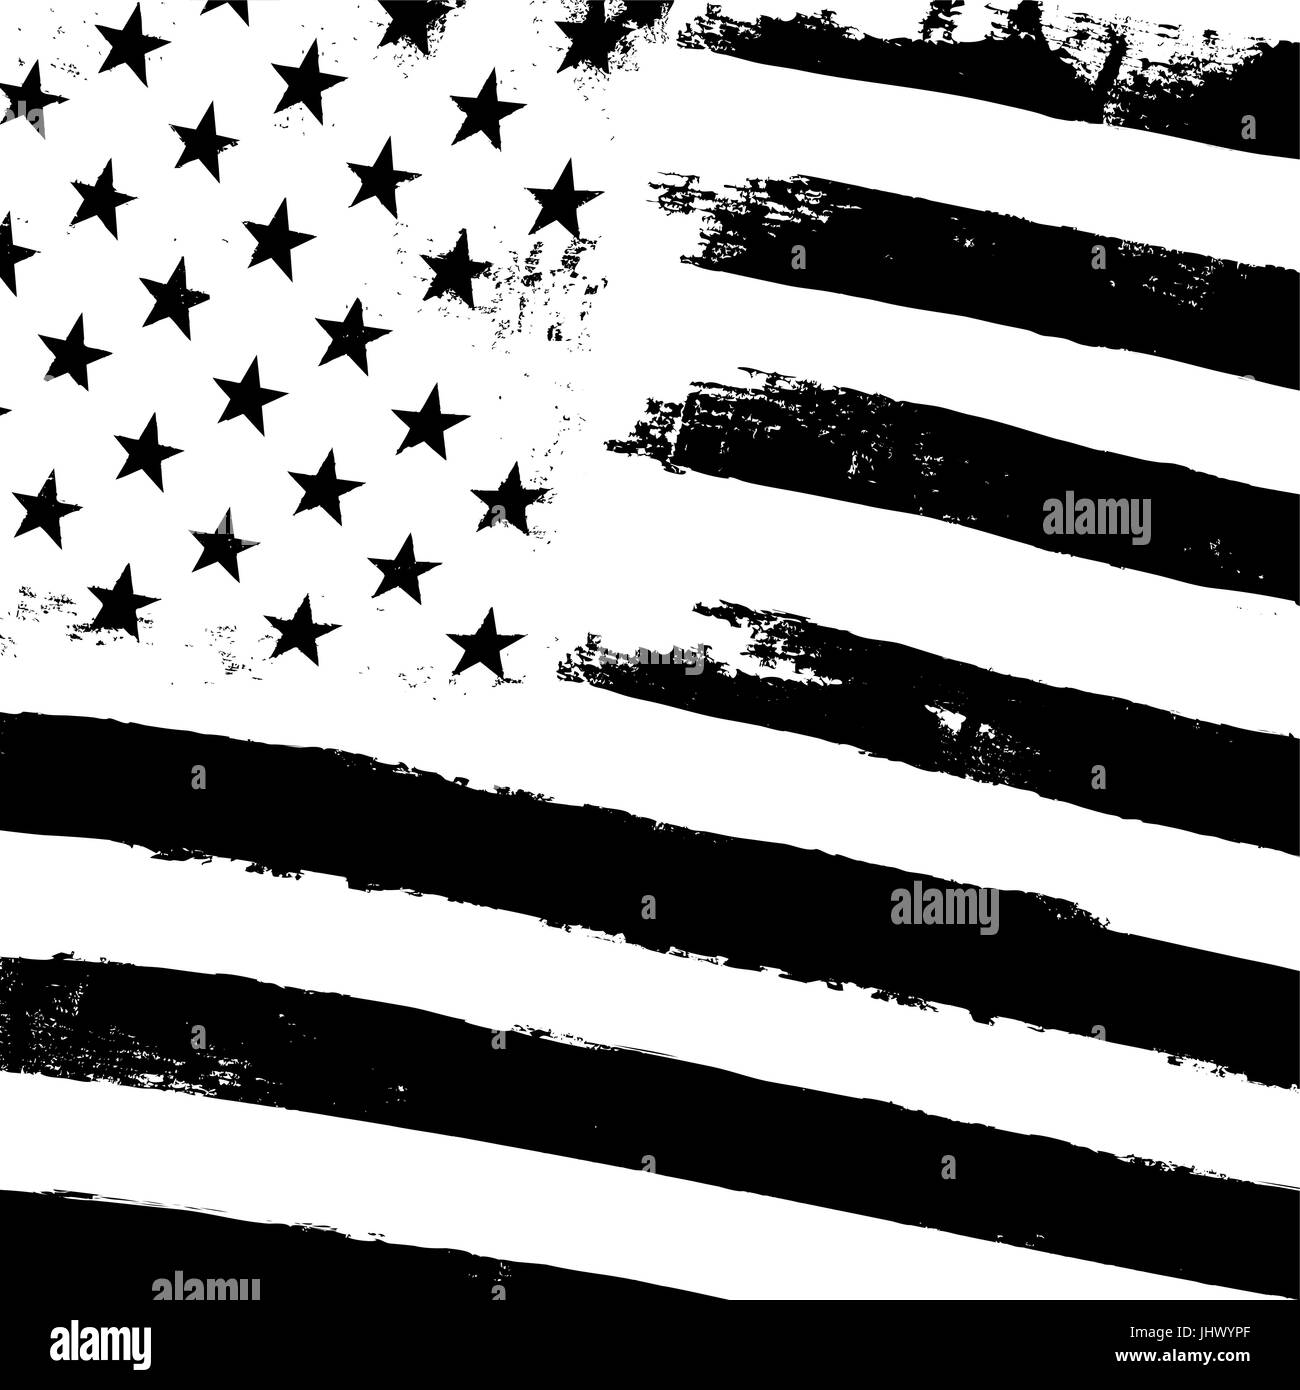 cf486ef94727 Monochrome grunge american flag background. Patriotic design template. Black  and white